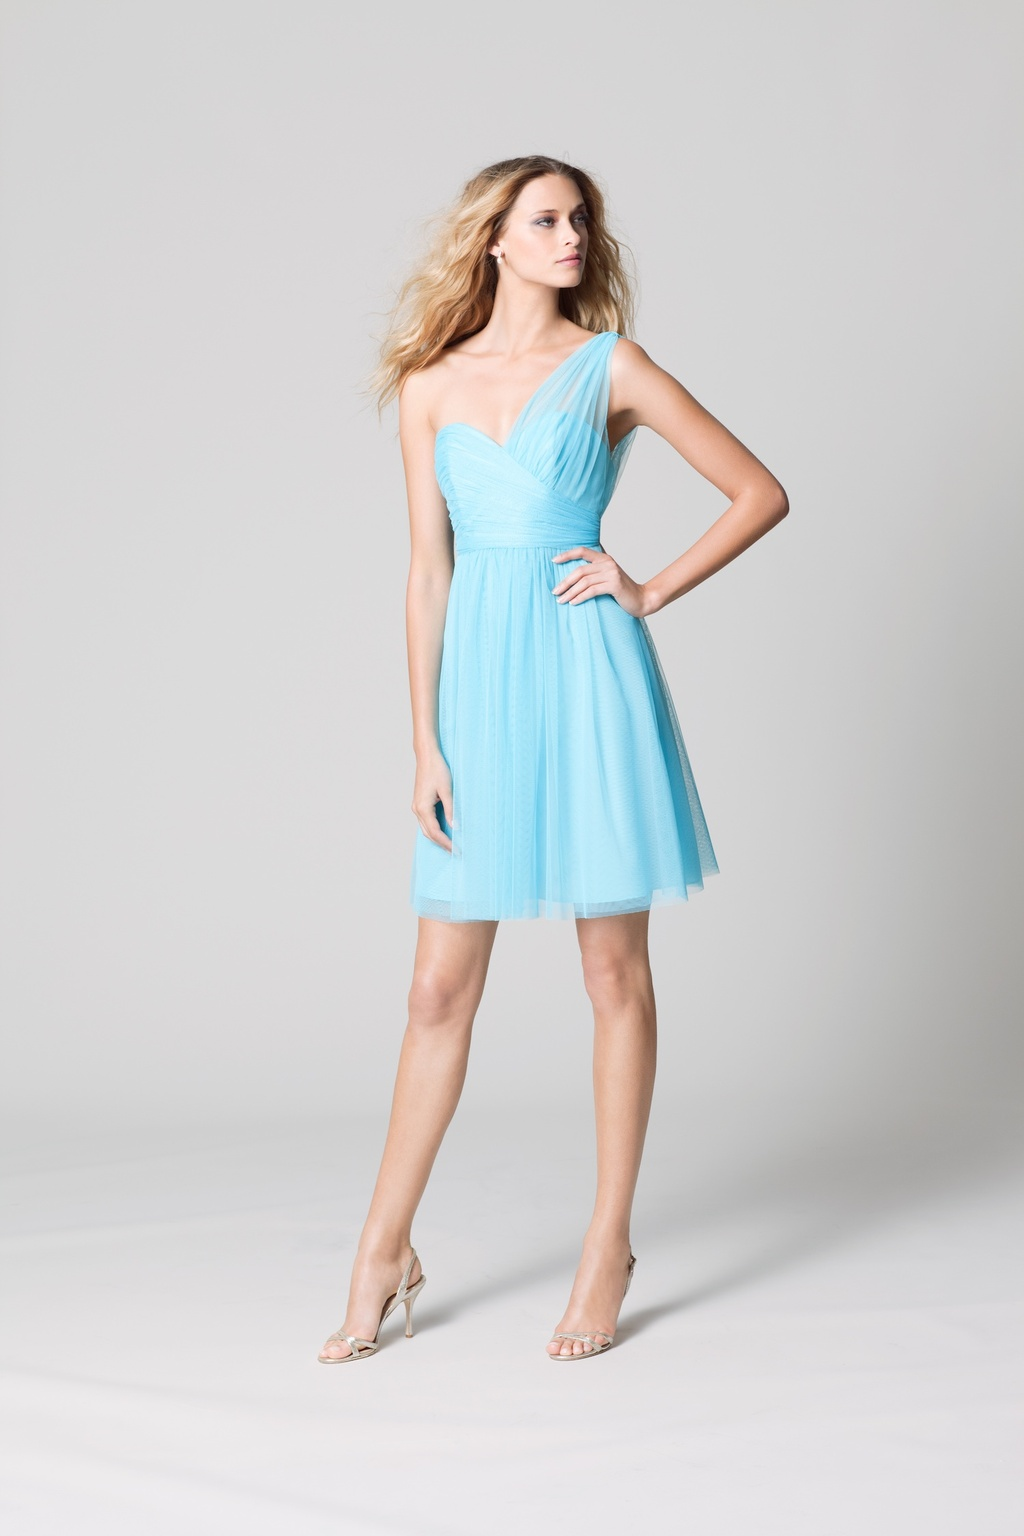 Affordable-bridesmaids-dresses-fall-2012-wtoo-by-watters-bridal-party-light-aqua-illusion-touches.full